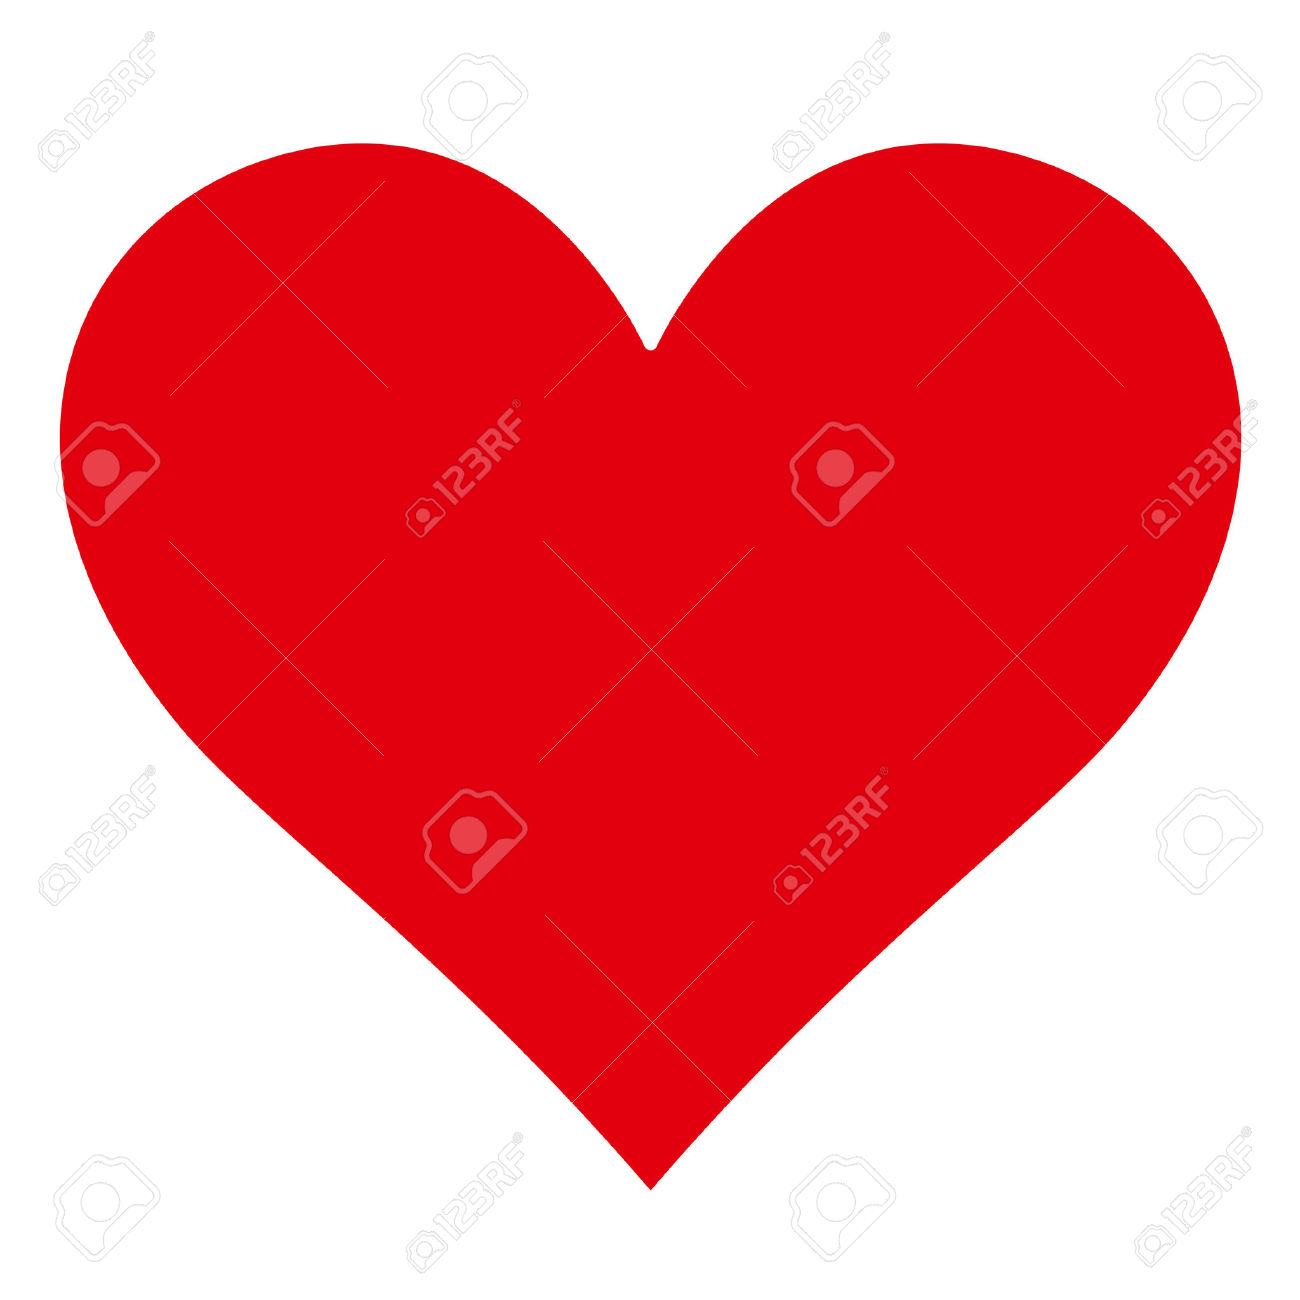 659,891 Heart Stock Vector Illustration And Royalty Free Heart Clipart.